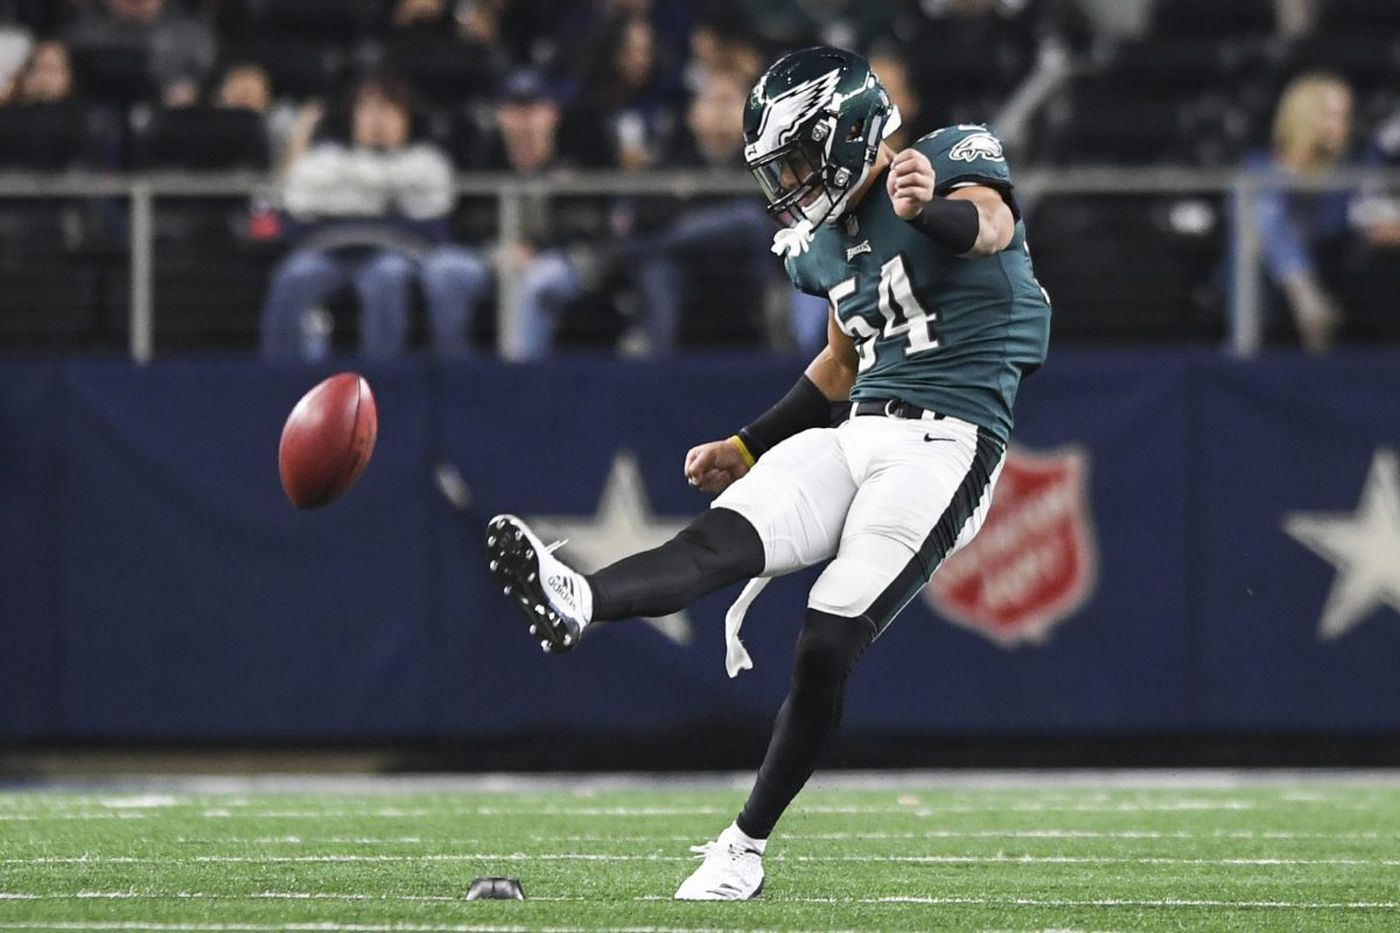 Eagles-Cowboys: What we learned